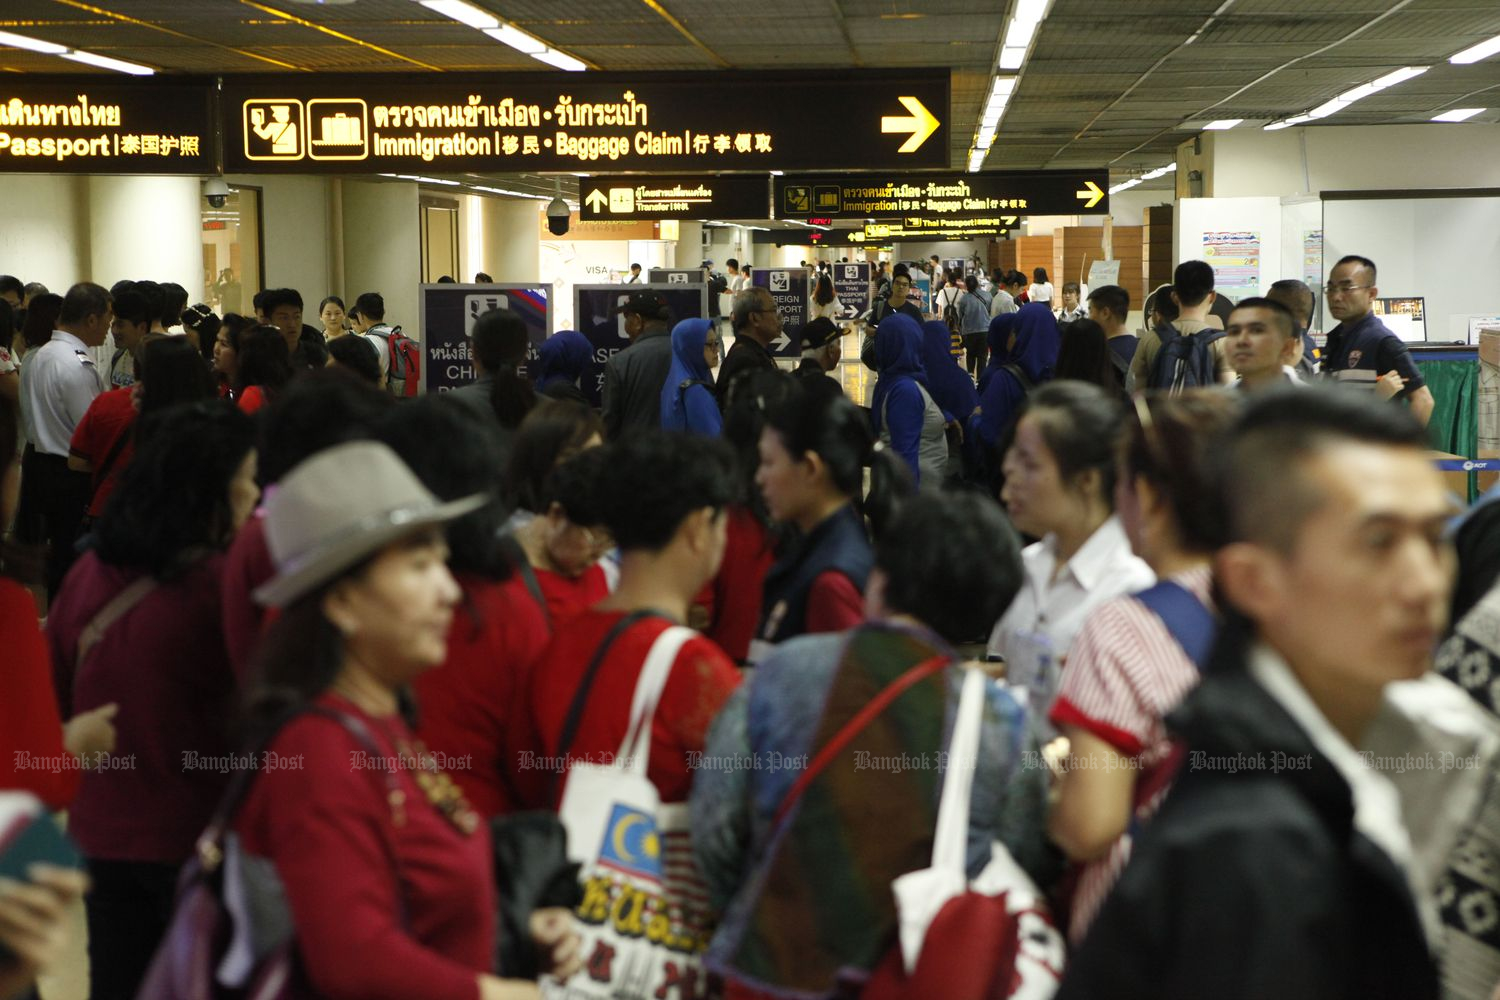 Foreign visitors arrive at the Suvarnabhumi Airport immigration checkpoint in September last year. (Bangkok Post file photo)